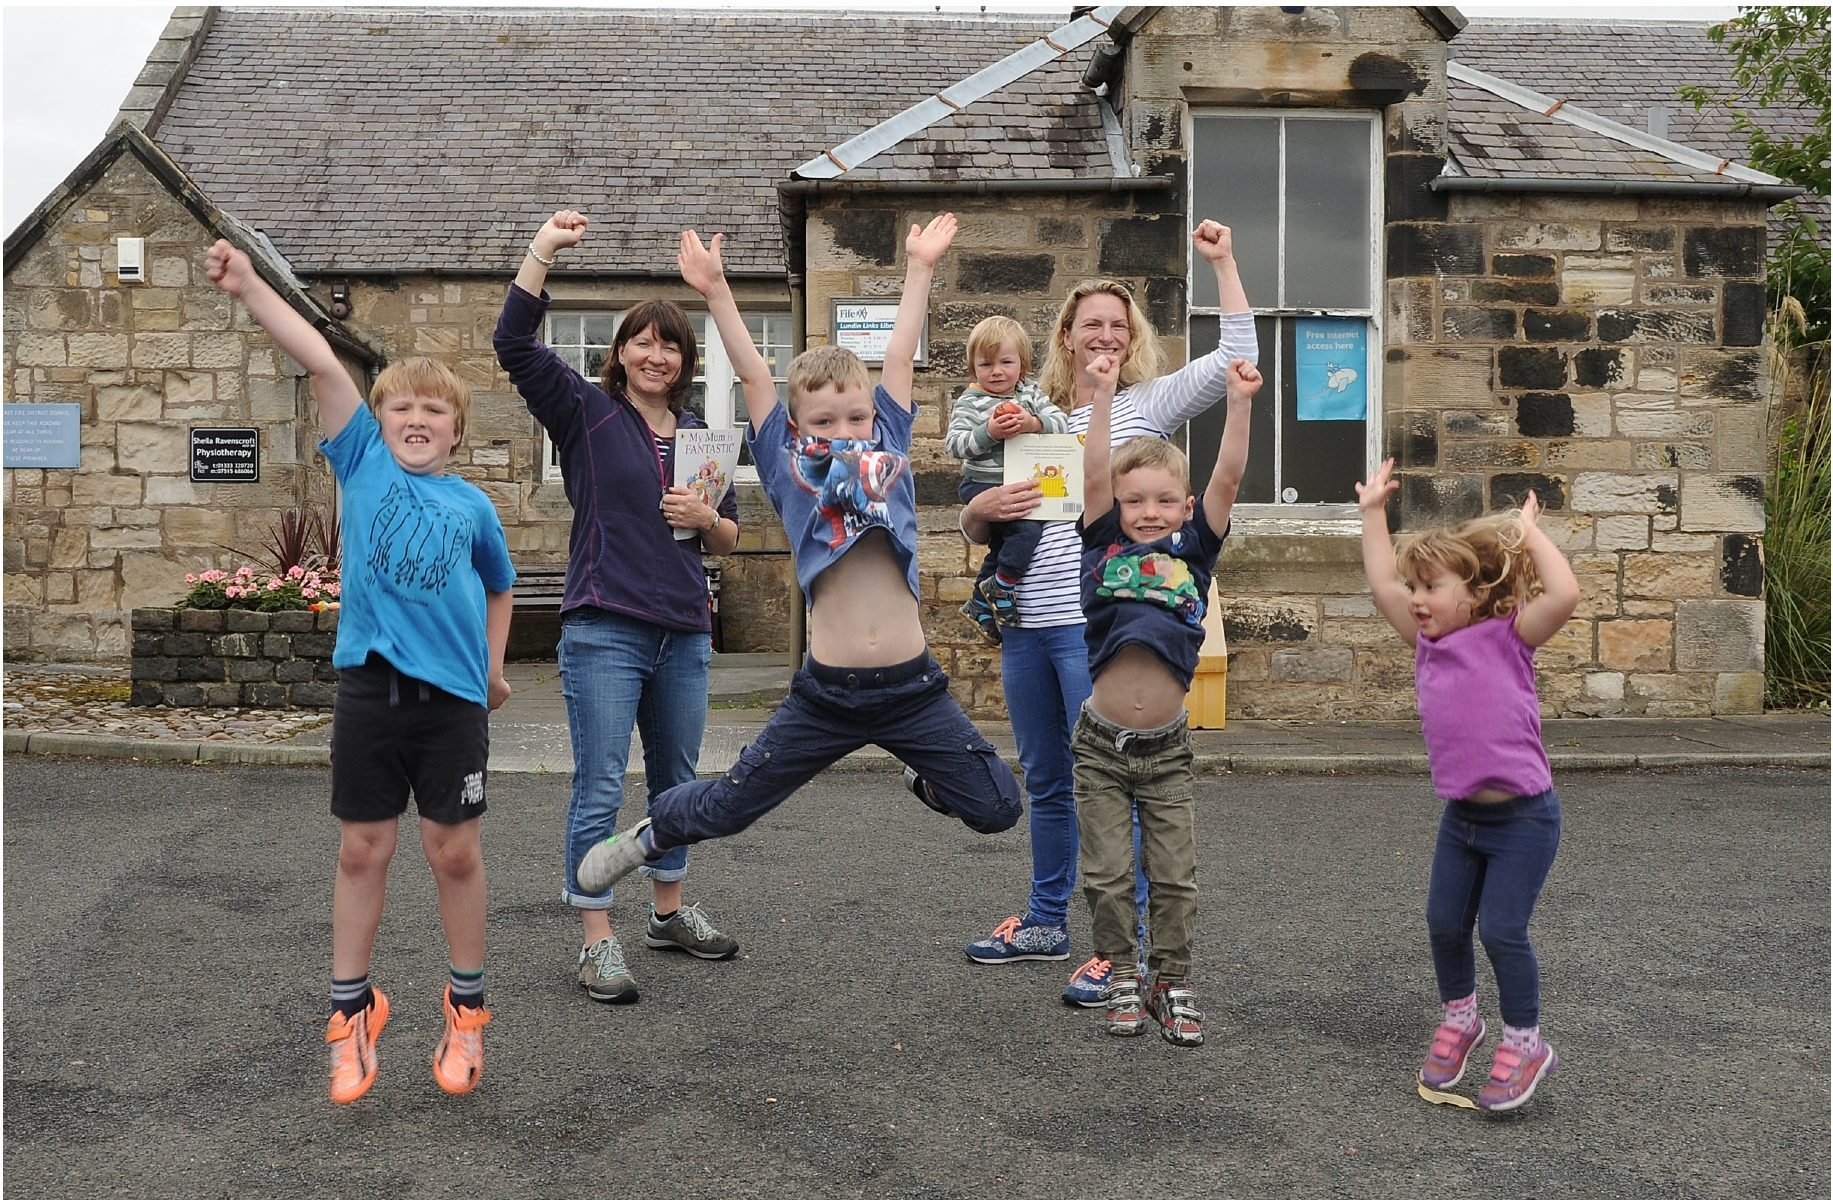 Celebrating at Lundin Links Library are children Murray, 7, Archie, 6, Innes, 4, and Emma, 3, with Heather Paterson and Emily Macdonald with Ruari, 1.